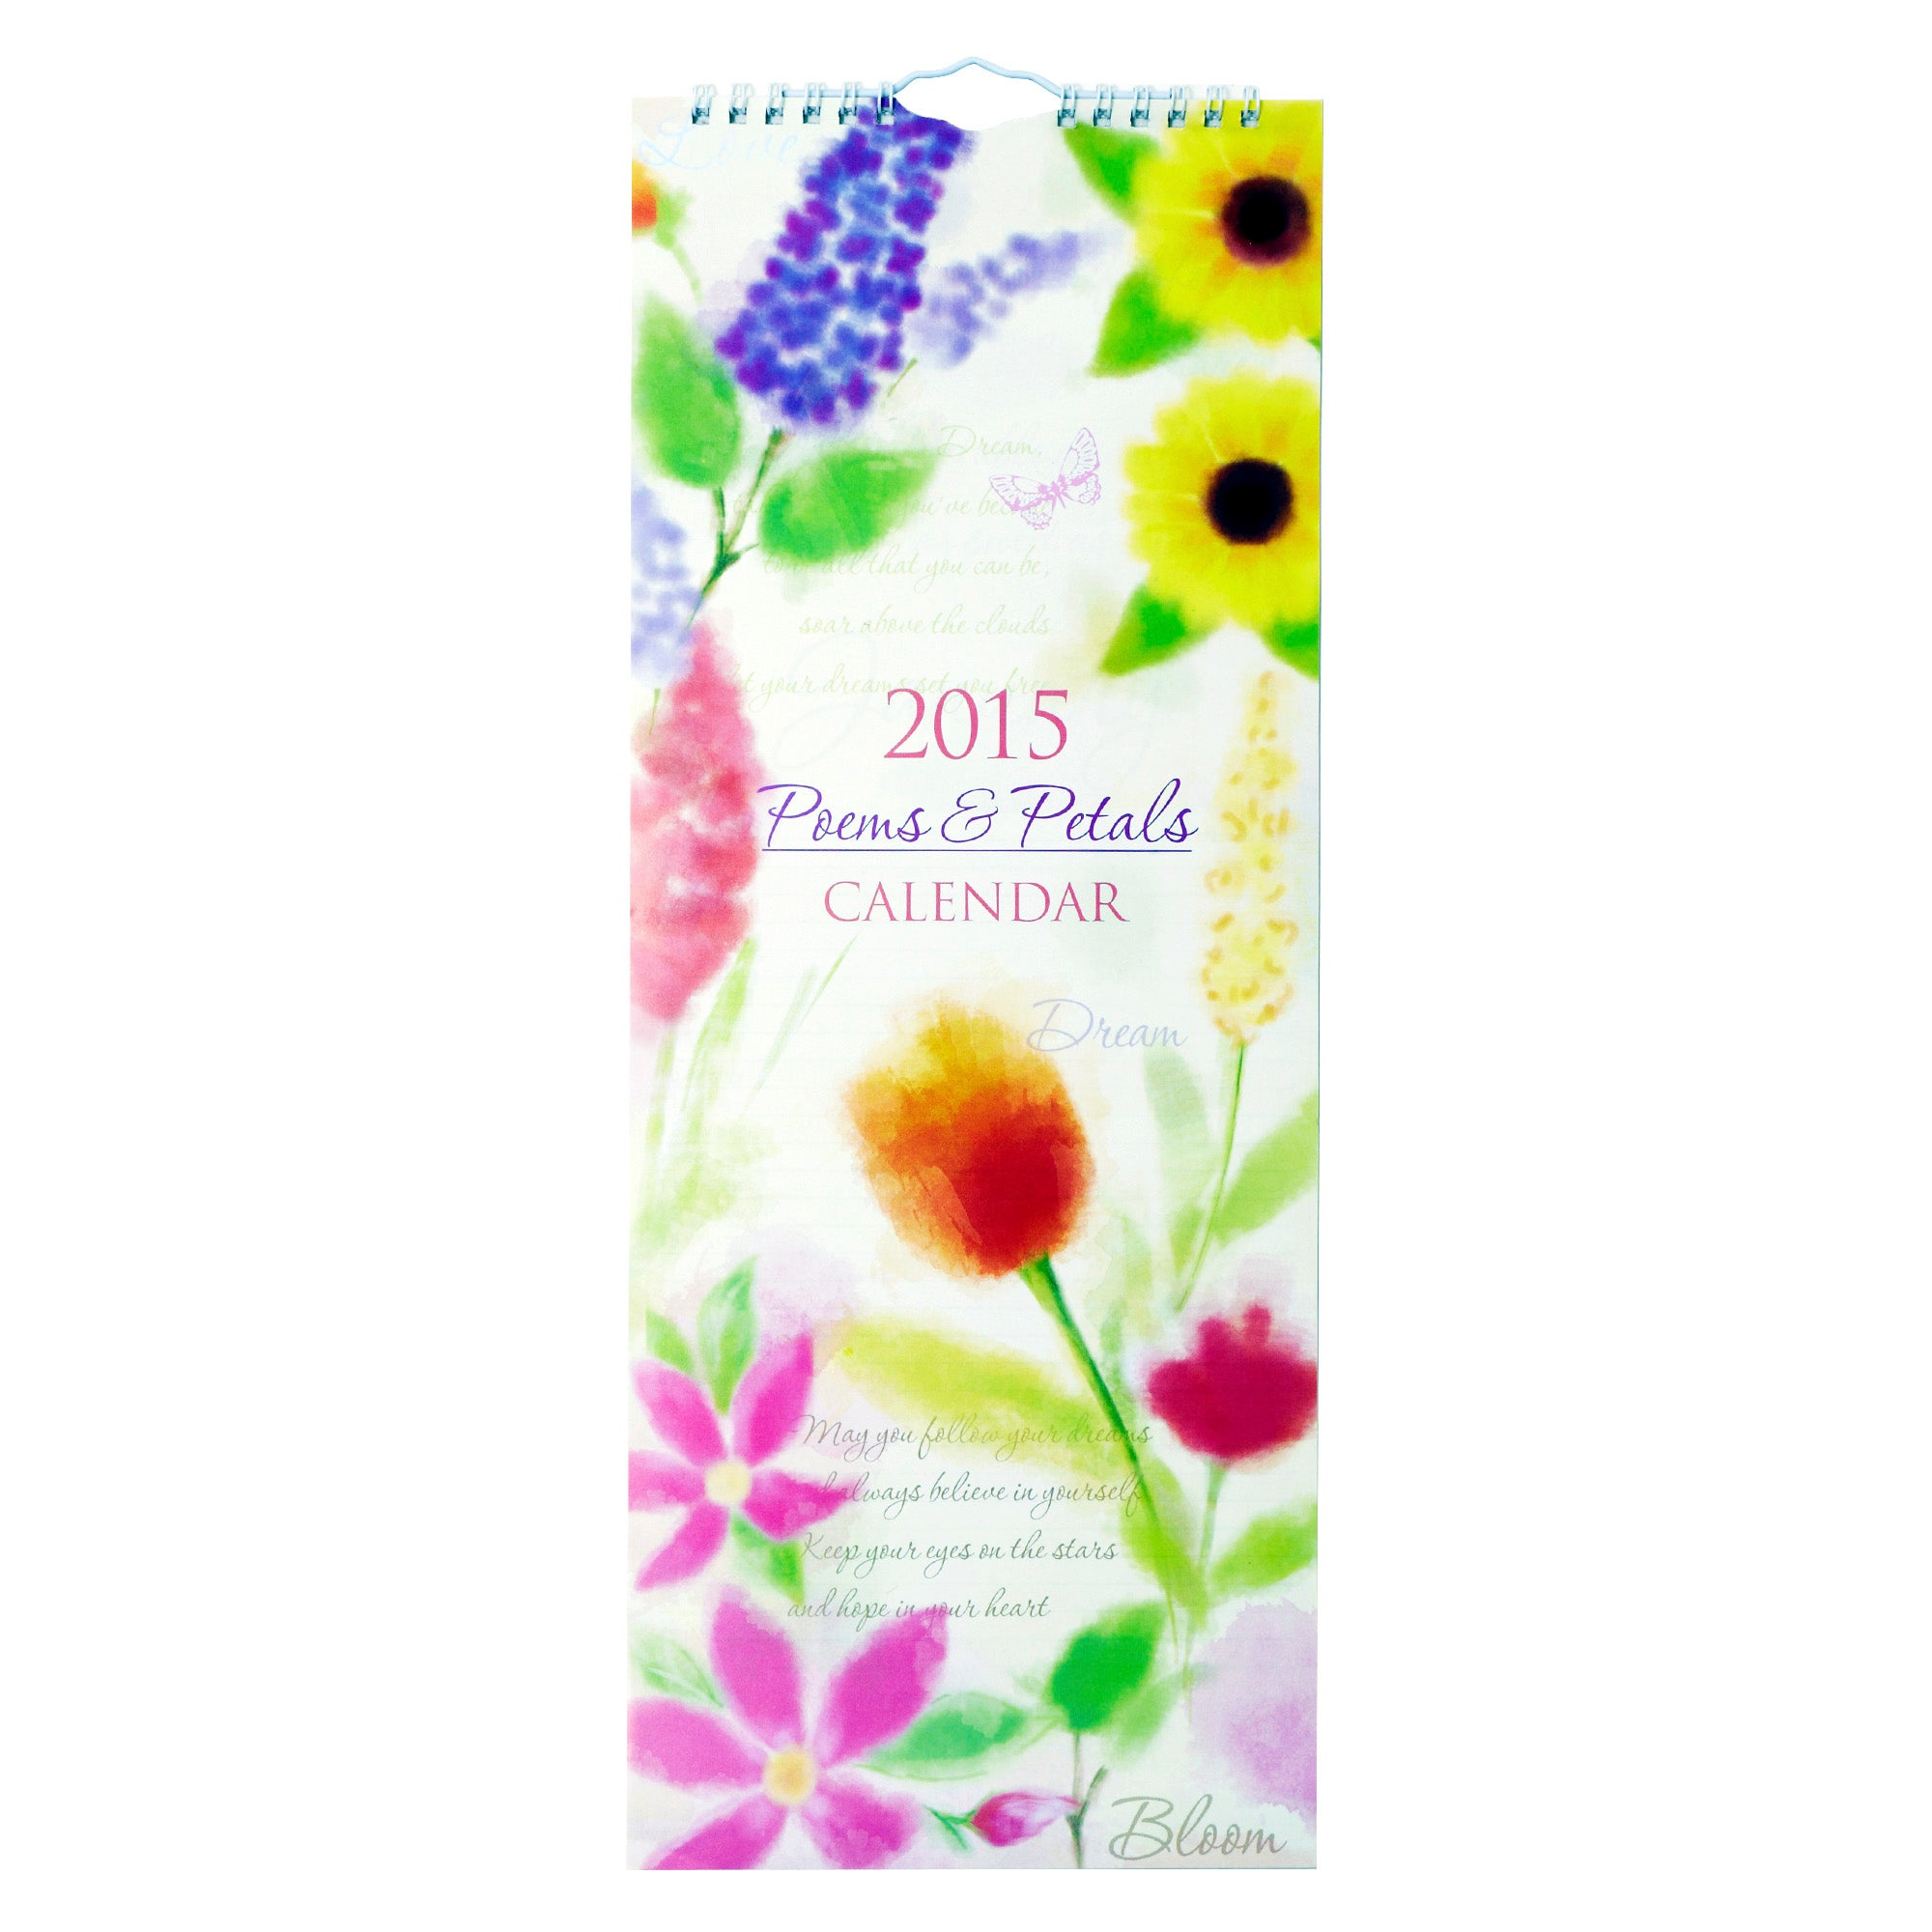 Poems and Petal Super Slim 2015 Calendar